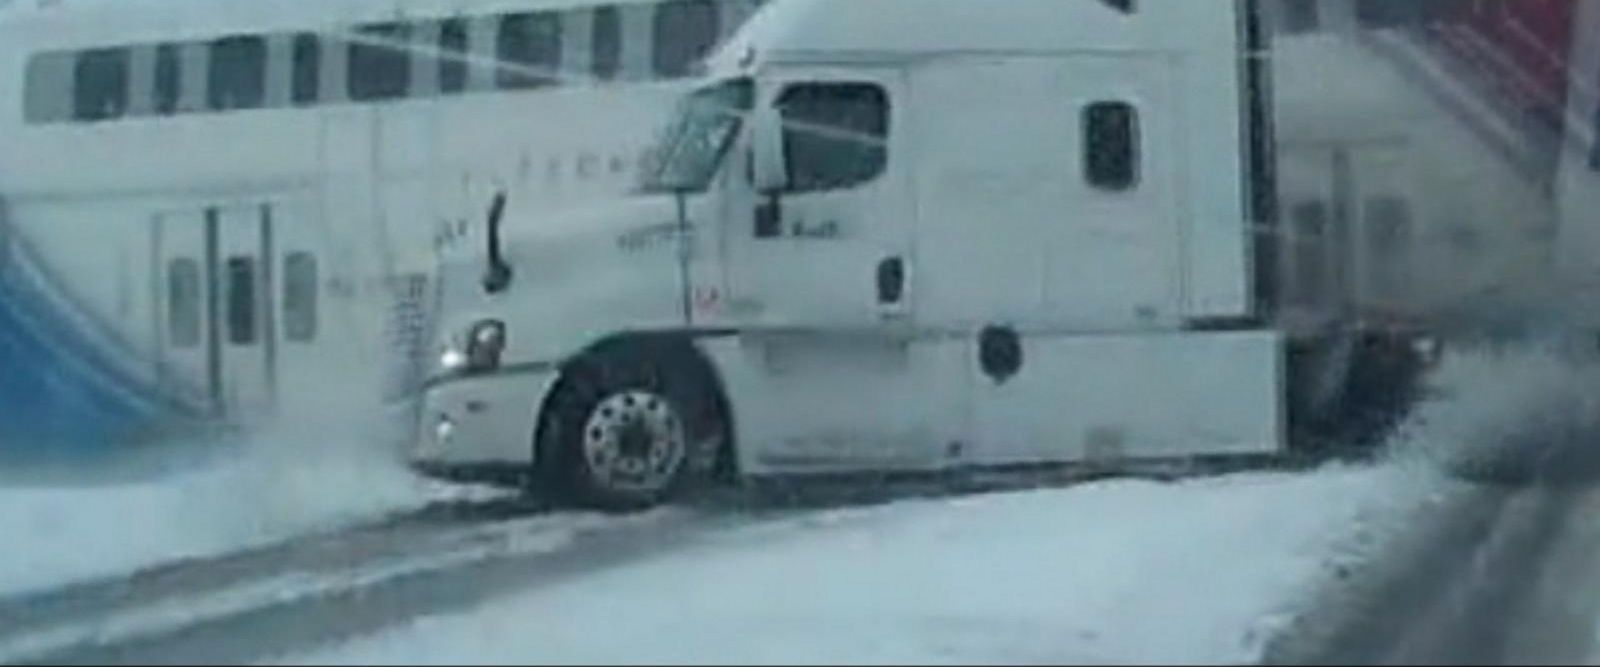 VIDEO: Train Collides With FedEx Truck in Utah